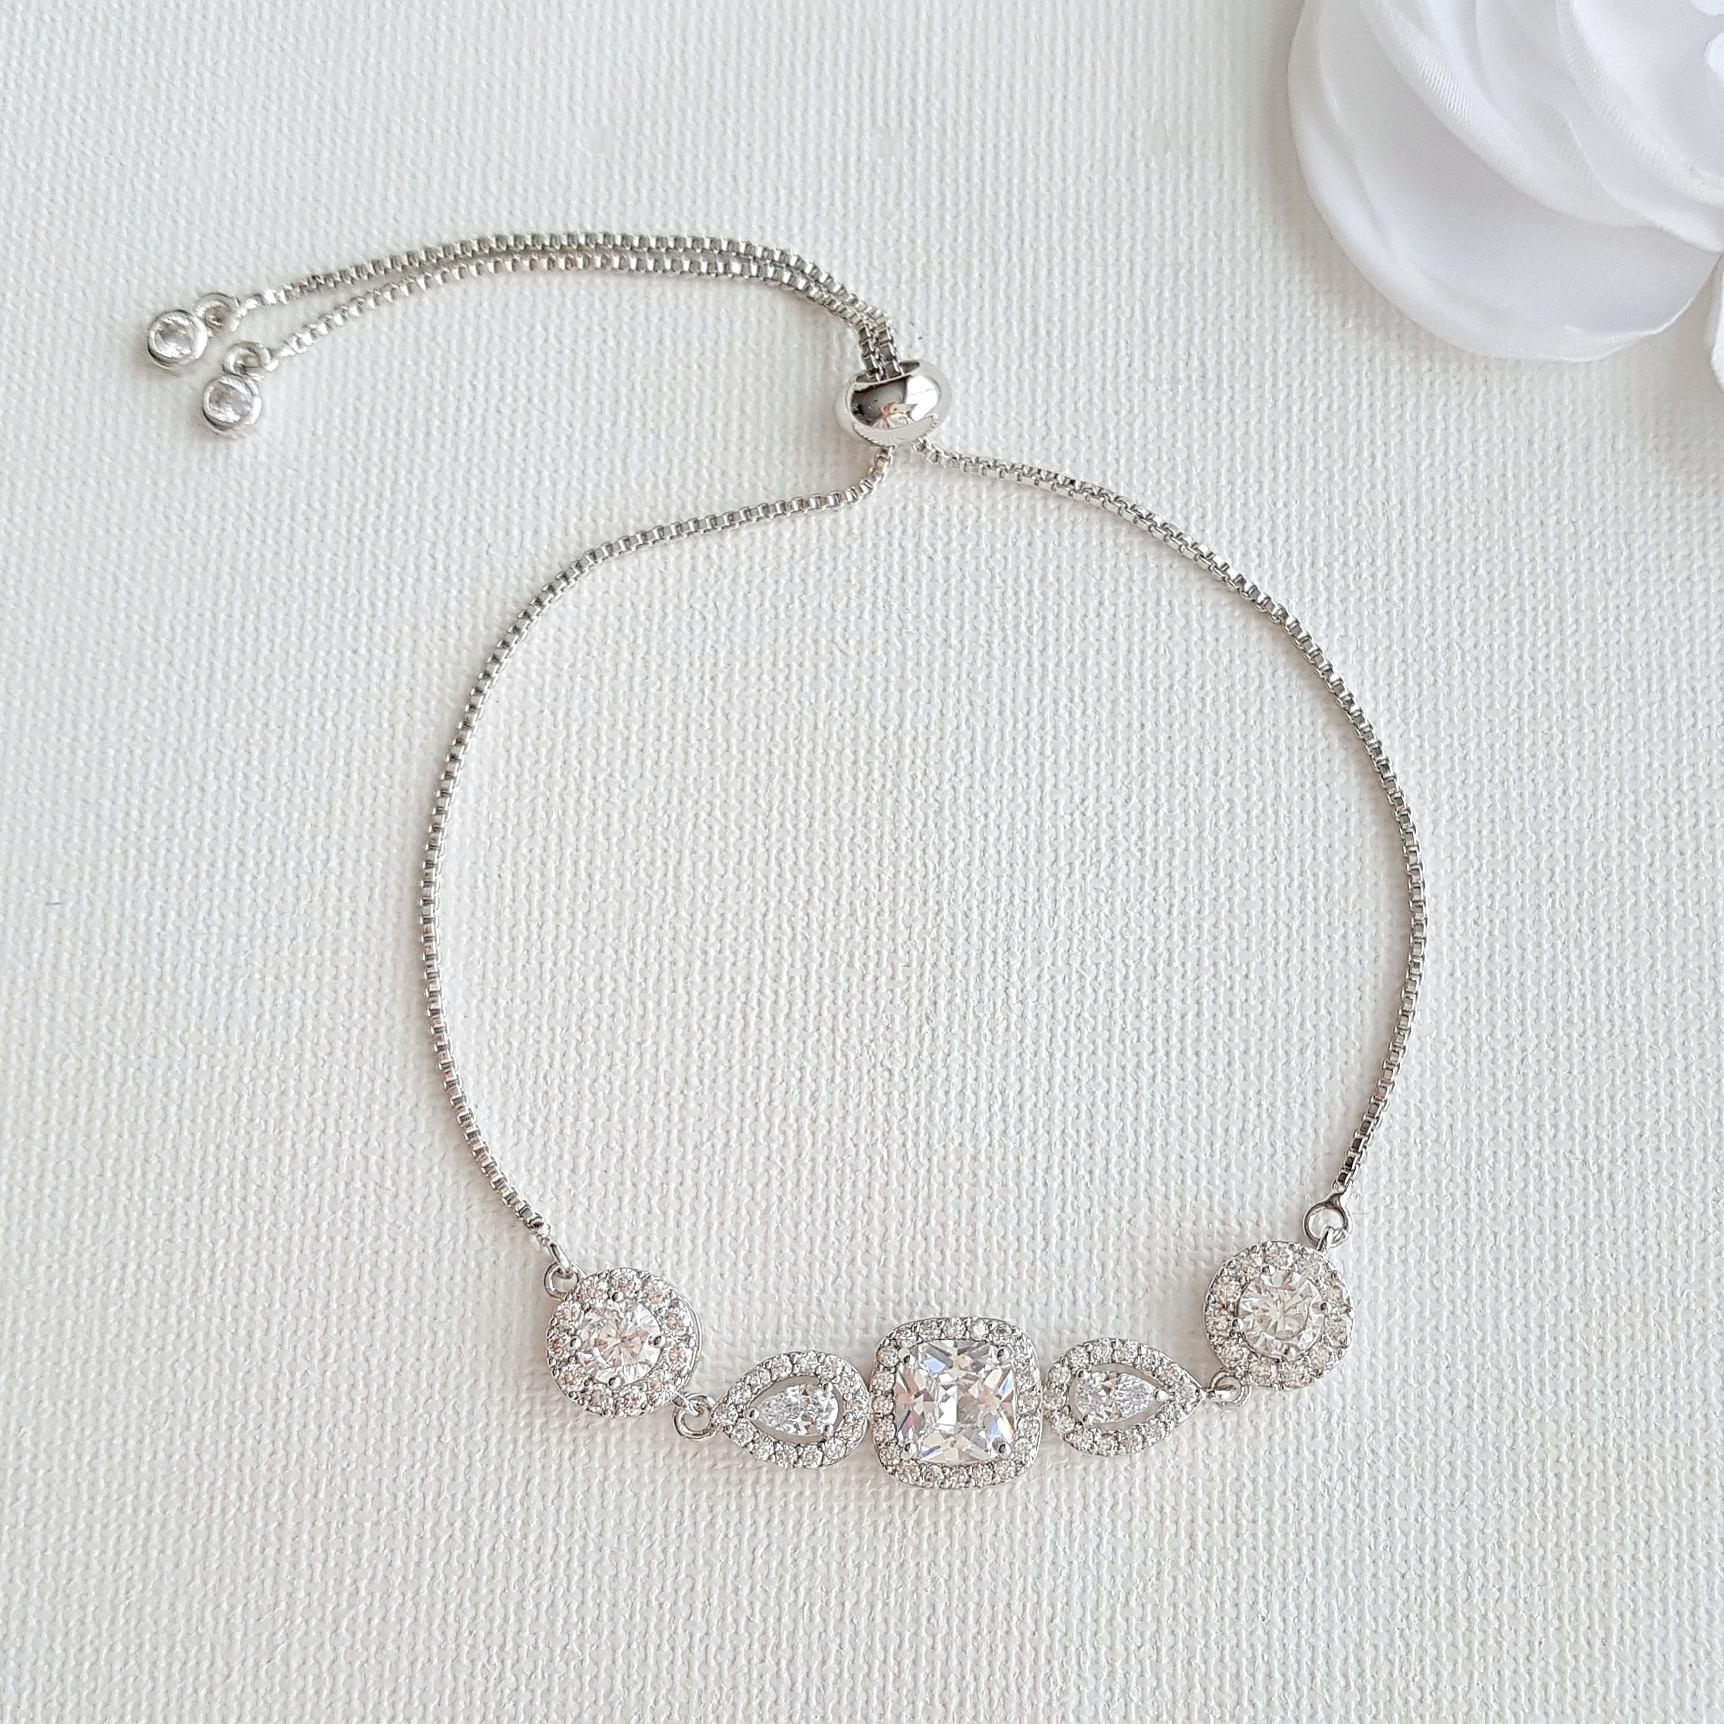 Bridal Bracelet Rose Gold Crystal Wedding Bracelet Cushion Cut Halo